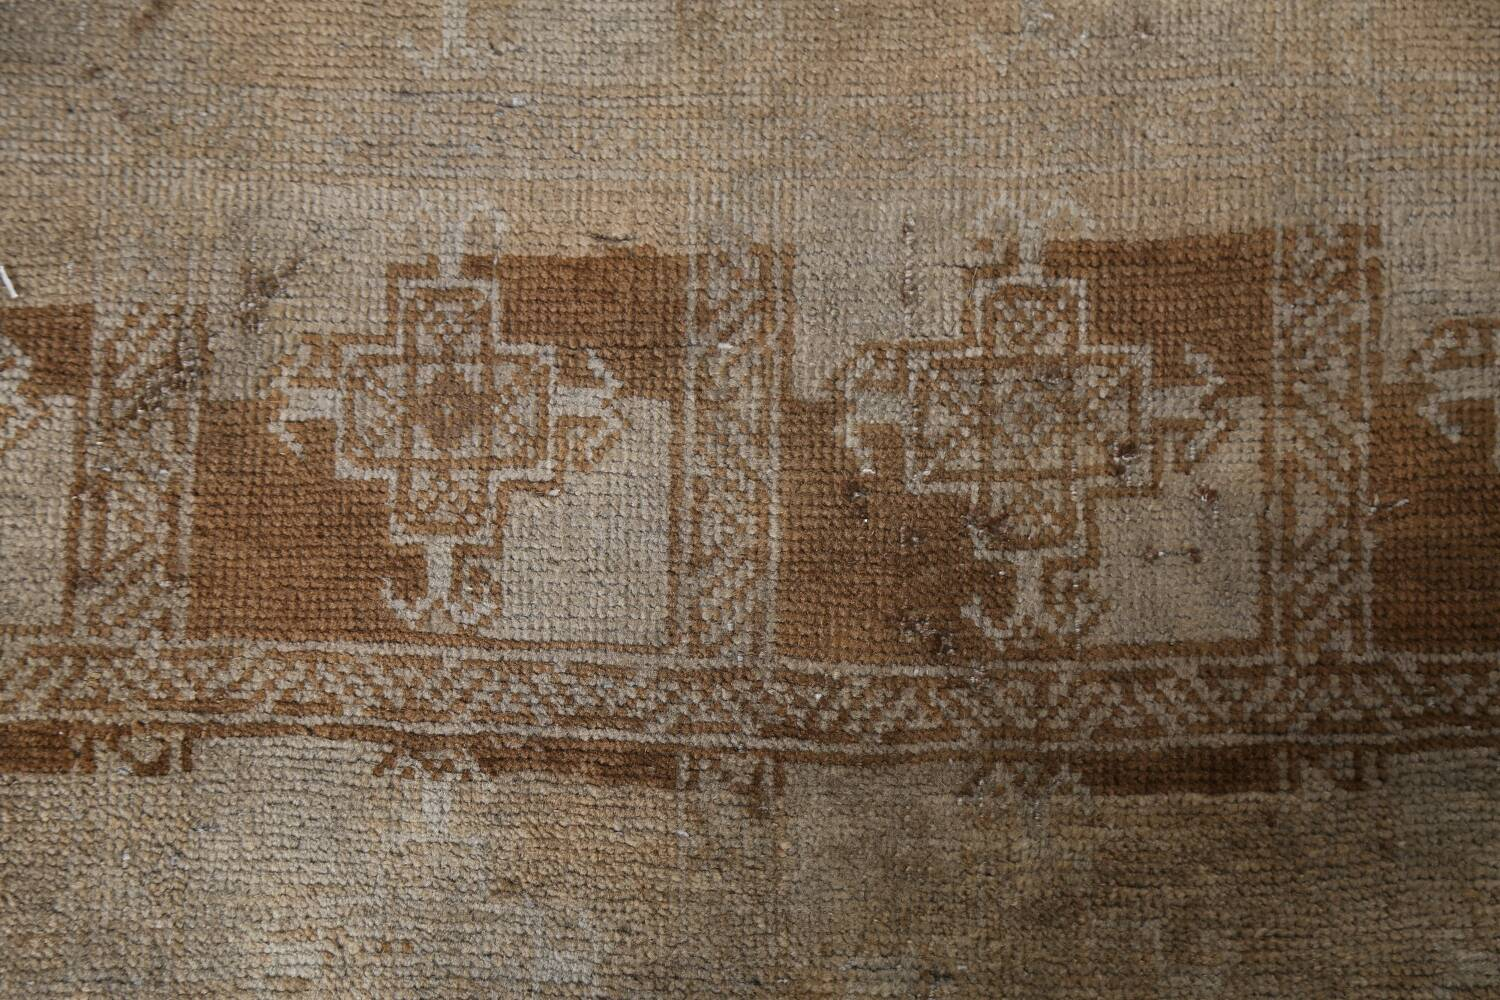 Antique Distressed Balouch Persian Wool Rug 4x8 image 8